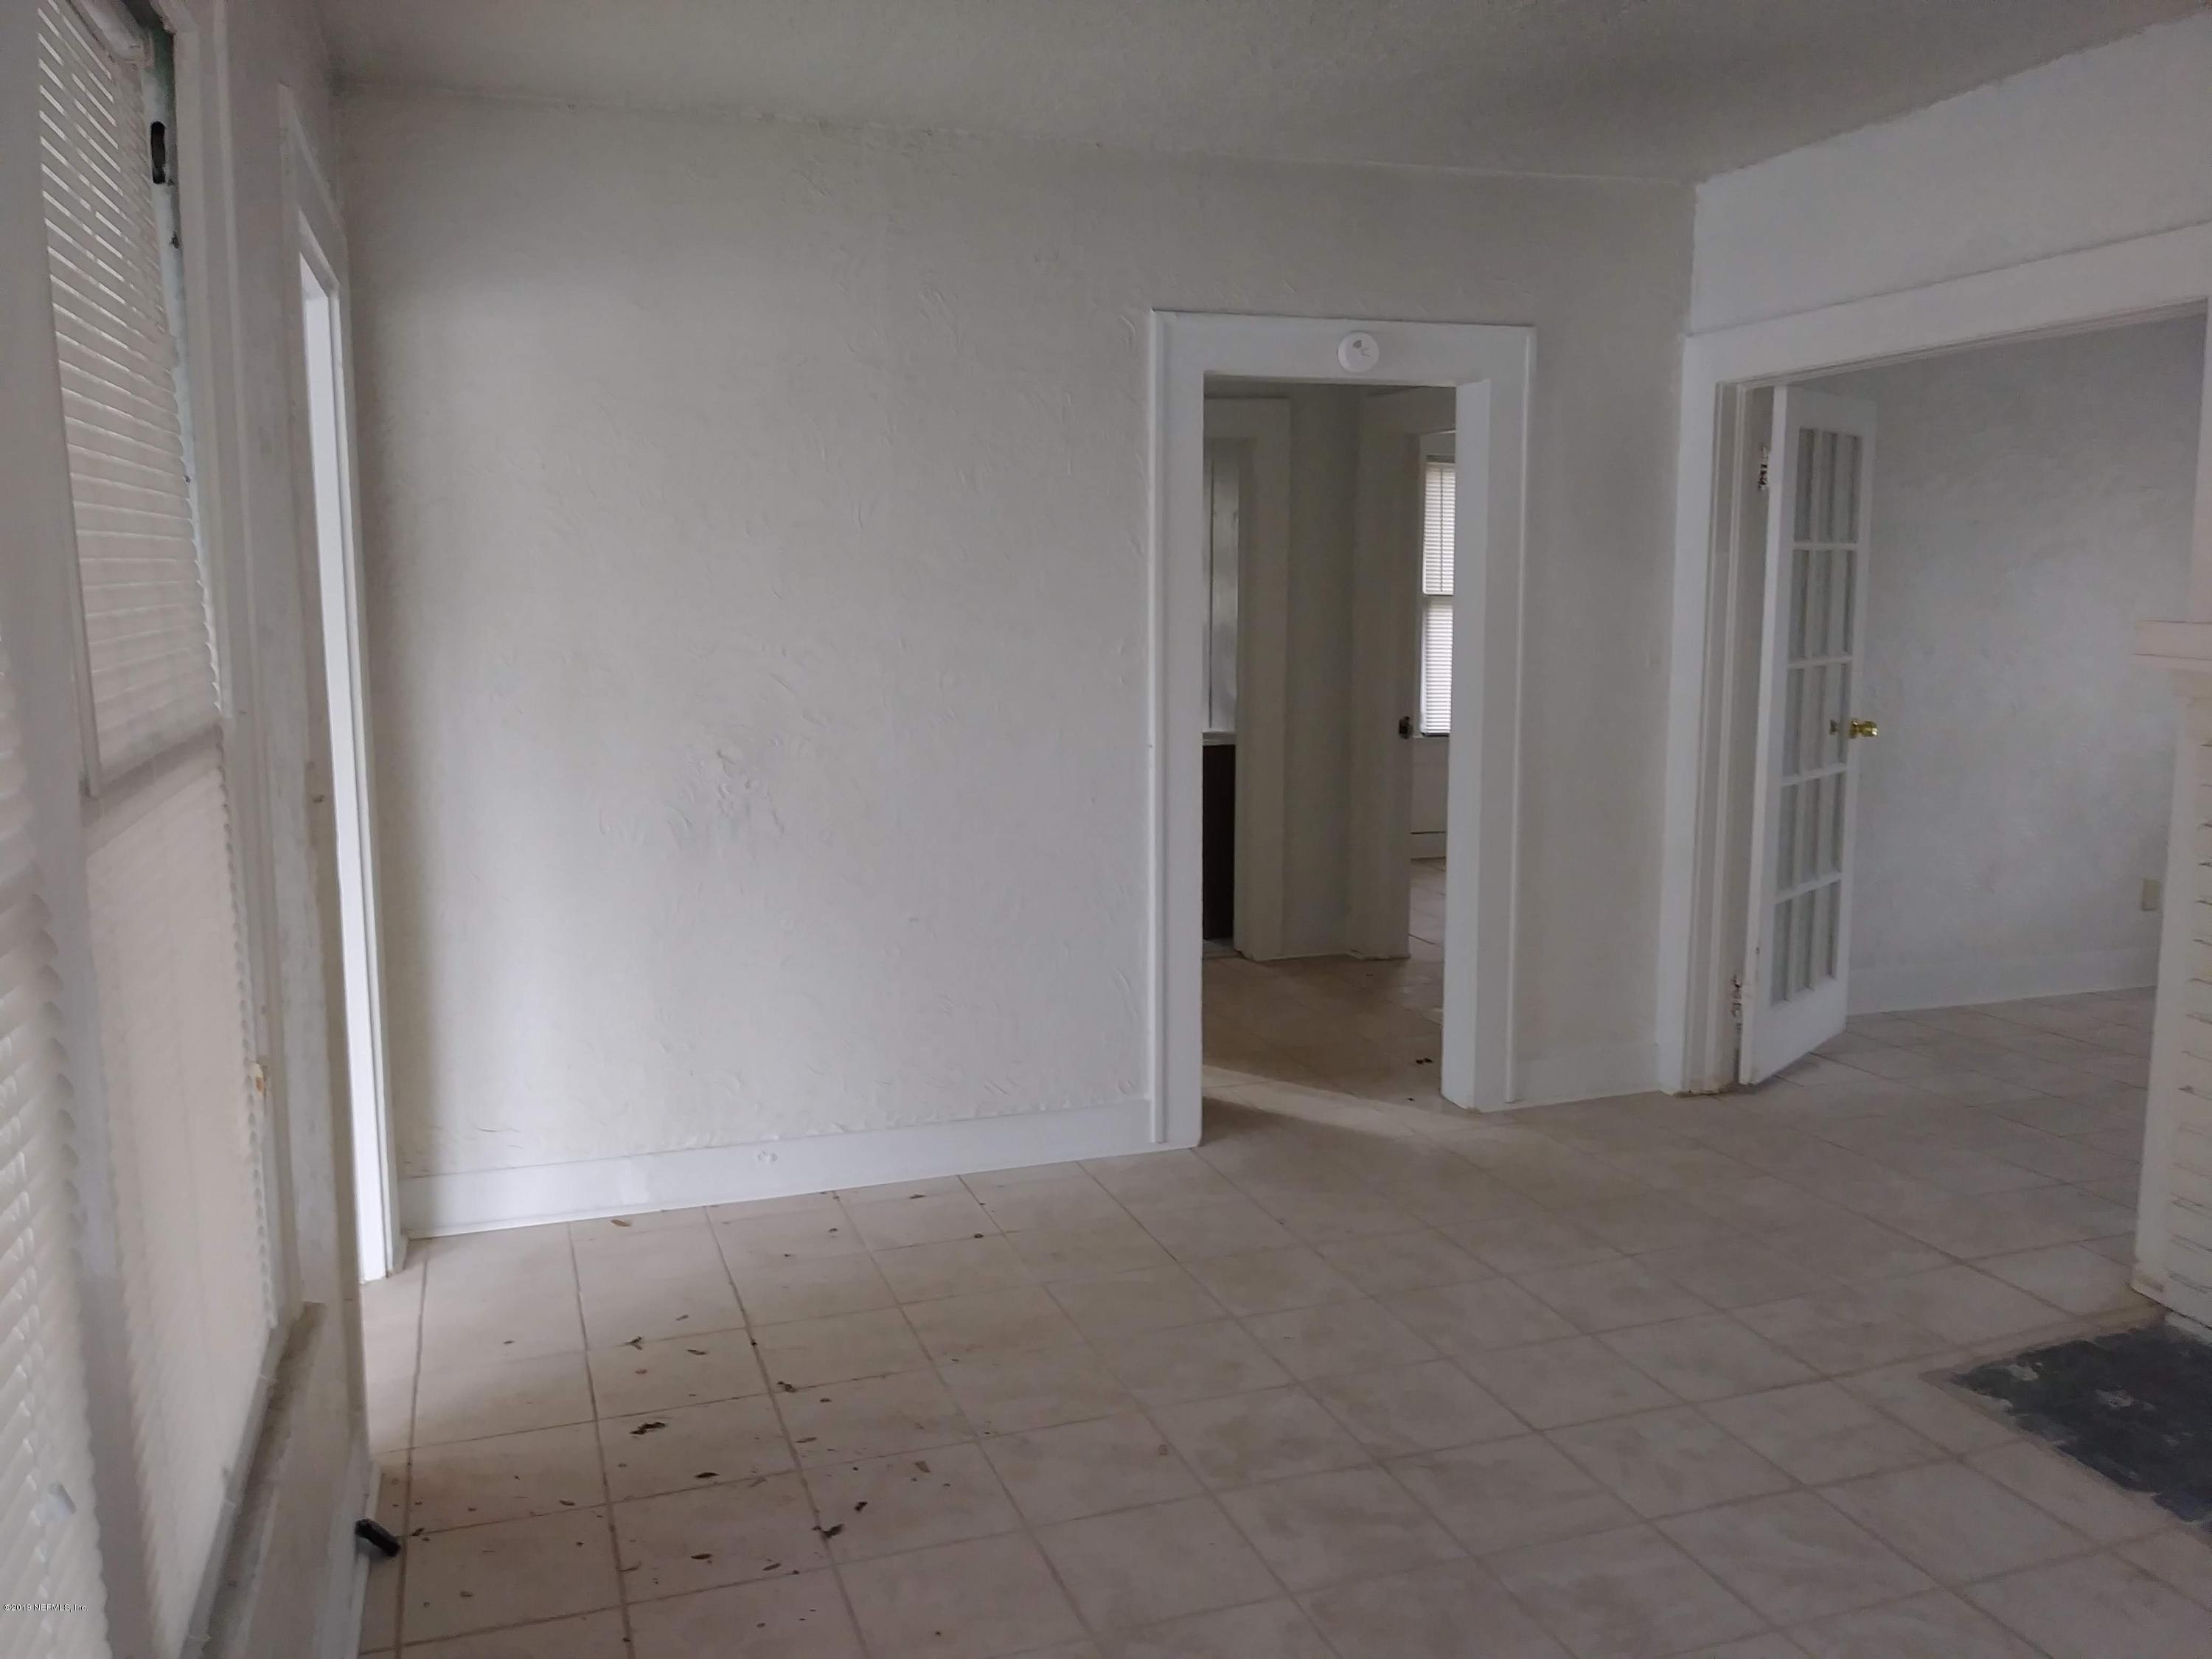 615 60TH, JACKSONVILLE, FLORIDA 32208, 2 Bedrooms Bedrooms, ,1 BathroomBathrooms,Investment / MultiFamily,For sale,60TH,990495